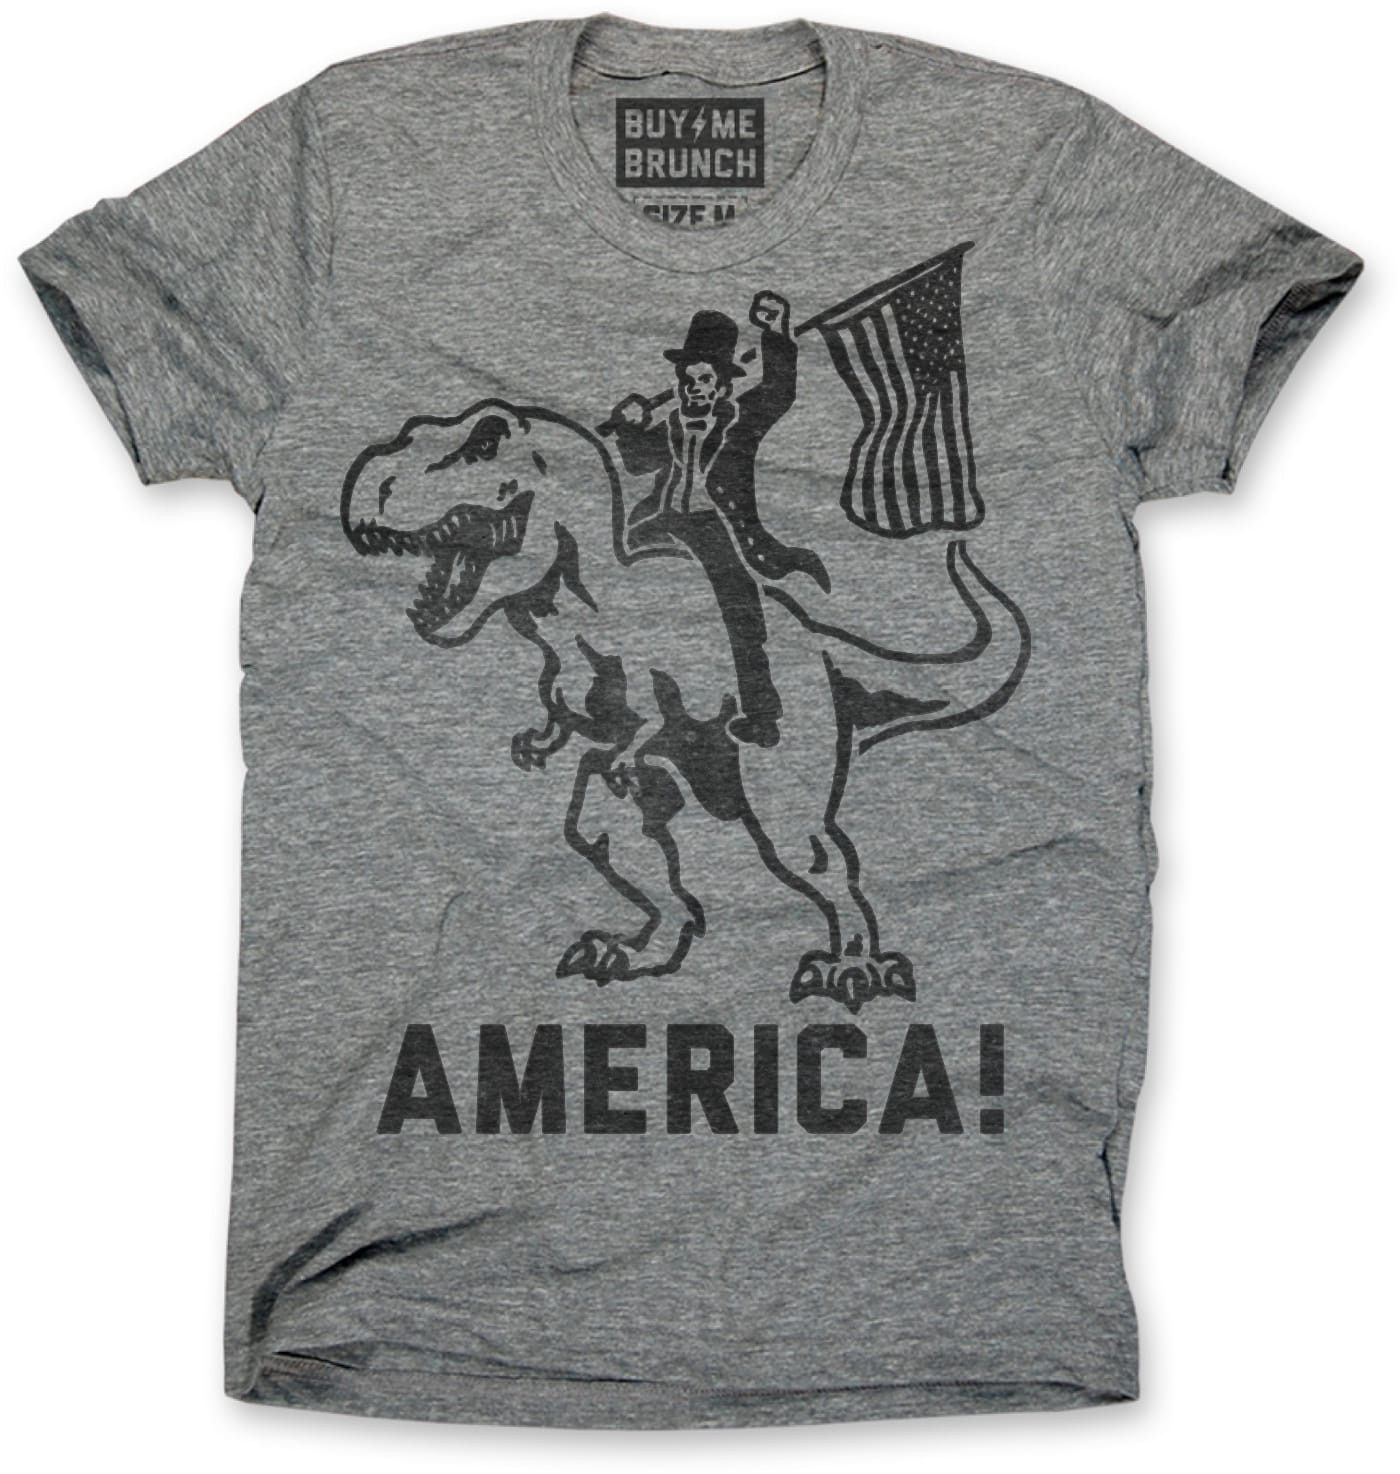 594ae8a2afc37 Abraham Lincoln on a T-Rex Men s Tee Grey – Buy Me Brunch